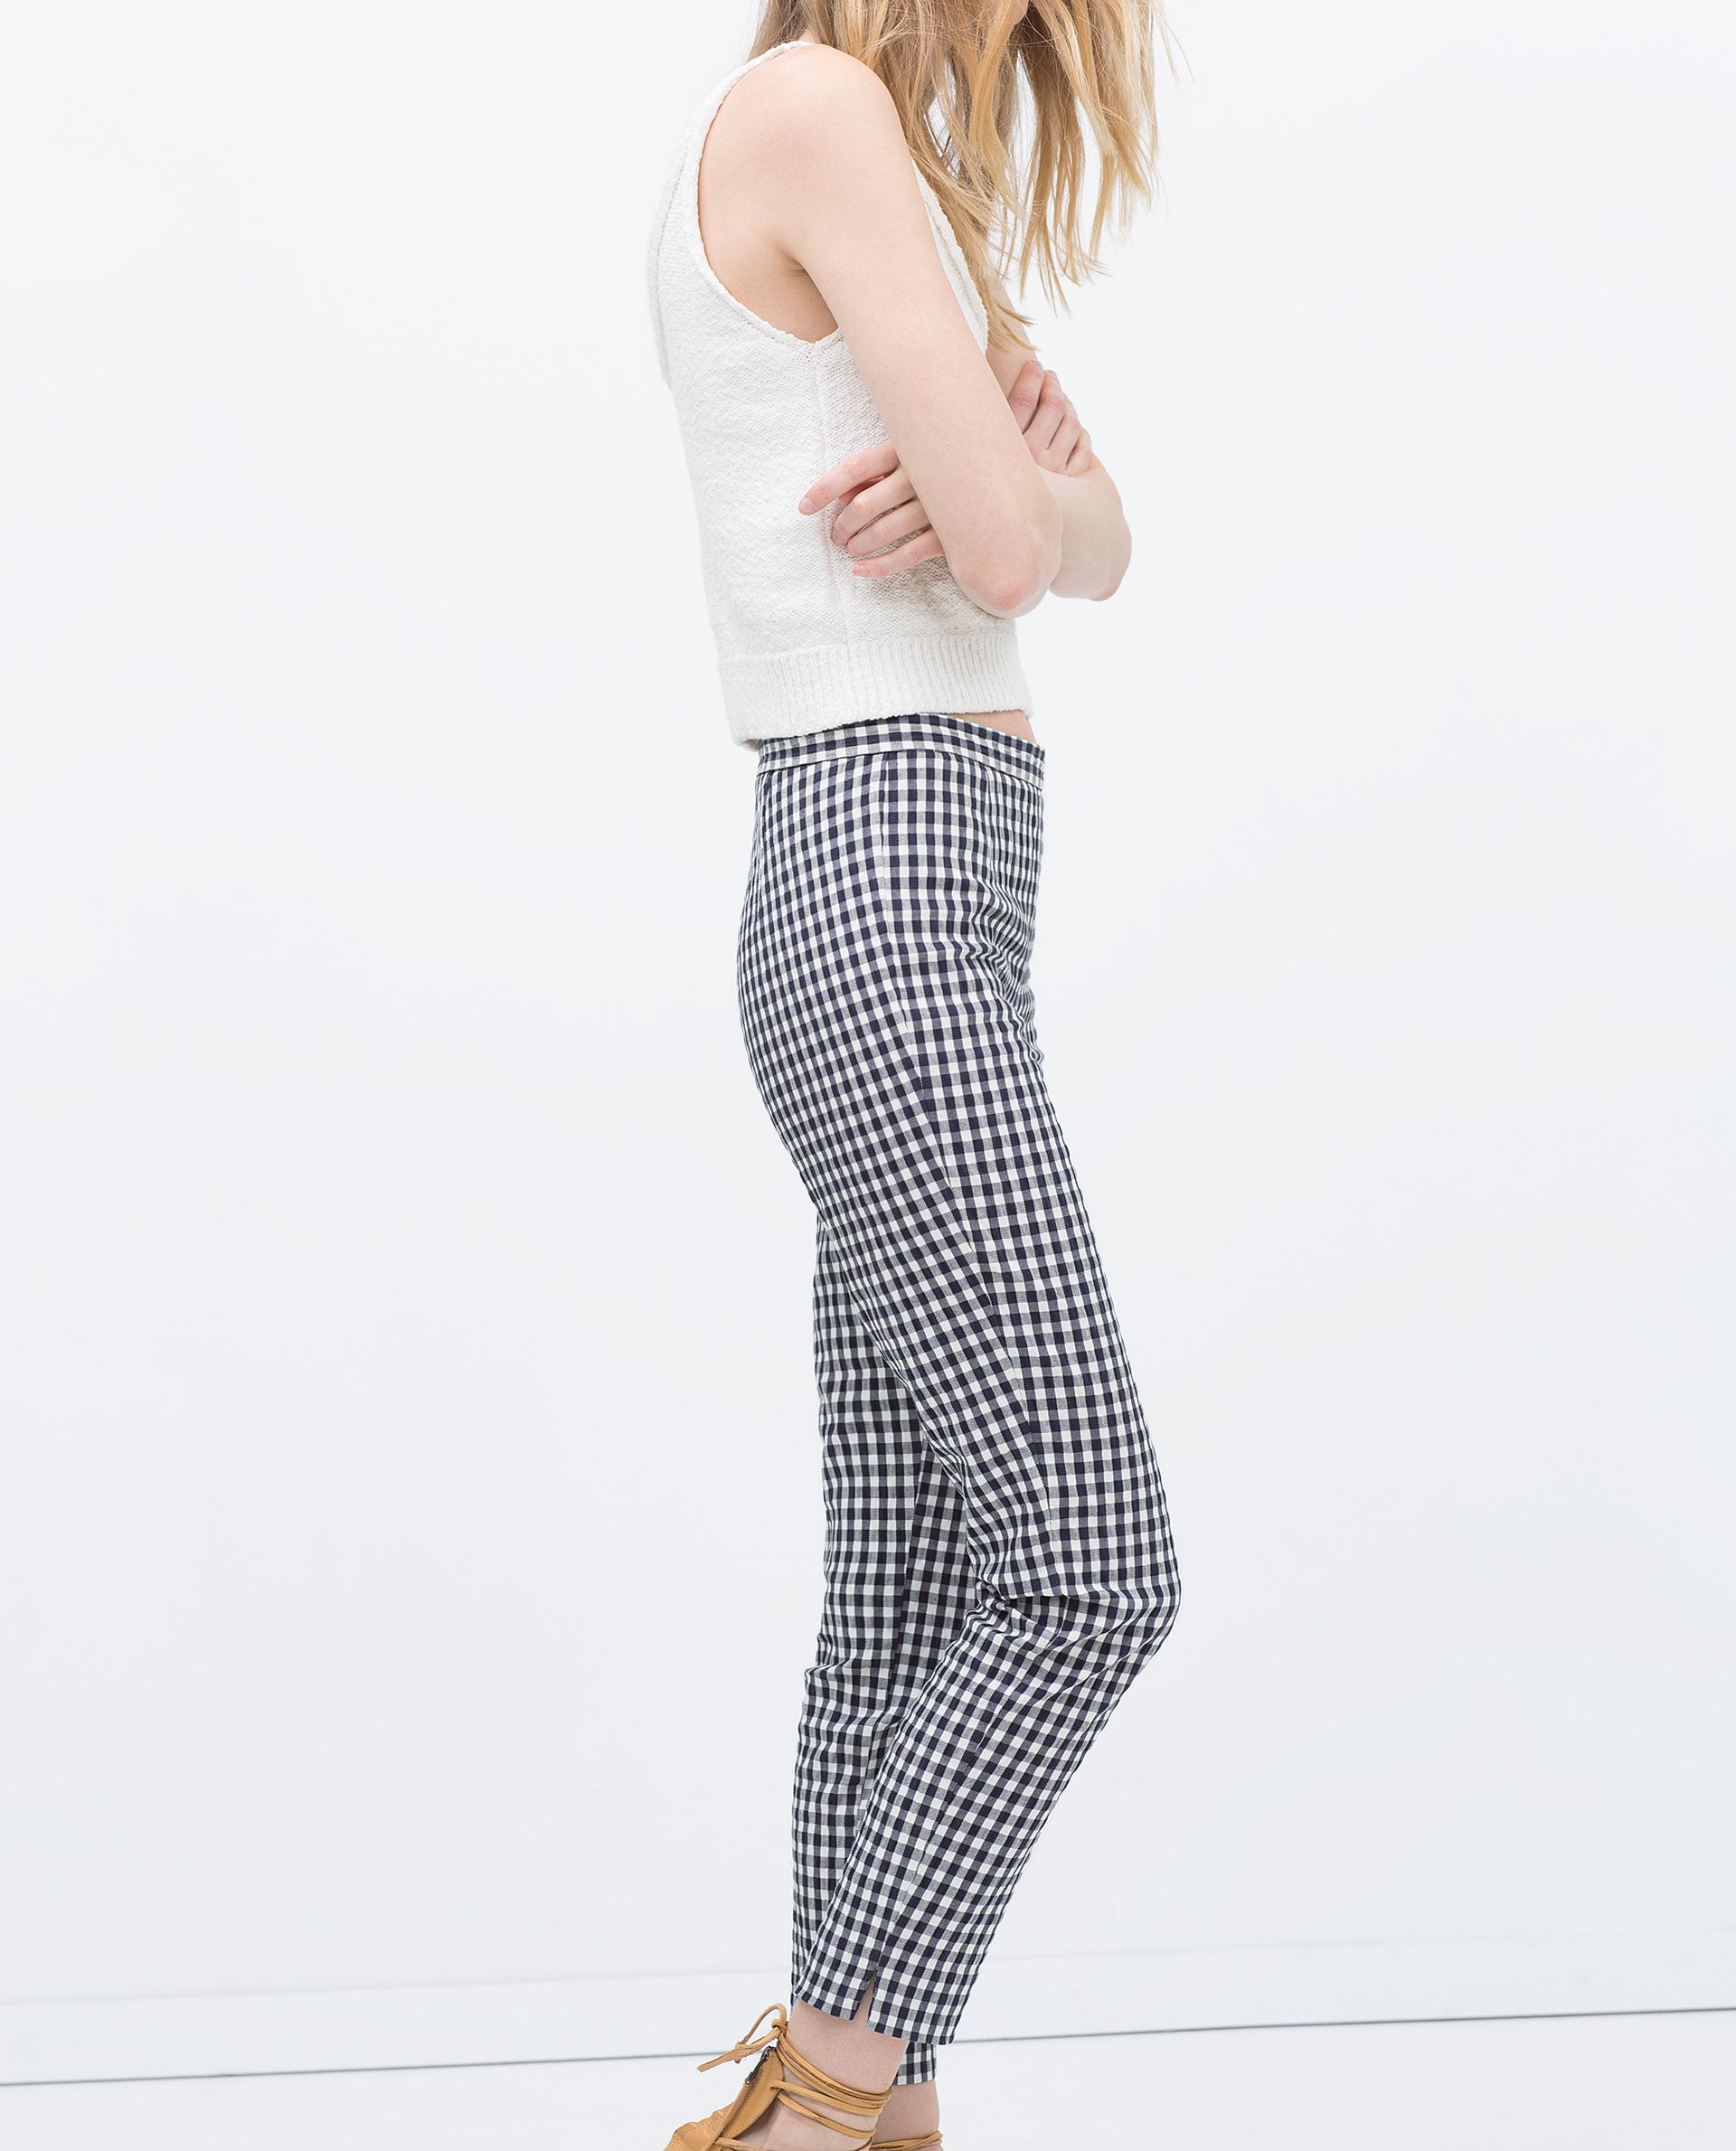 Zara Checked Skinny Trousers ($40)